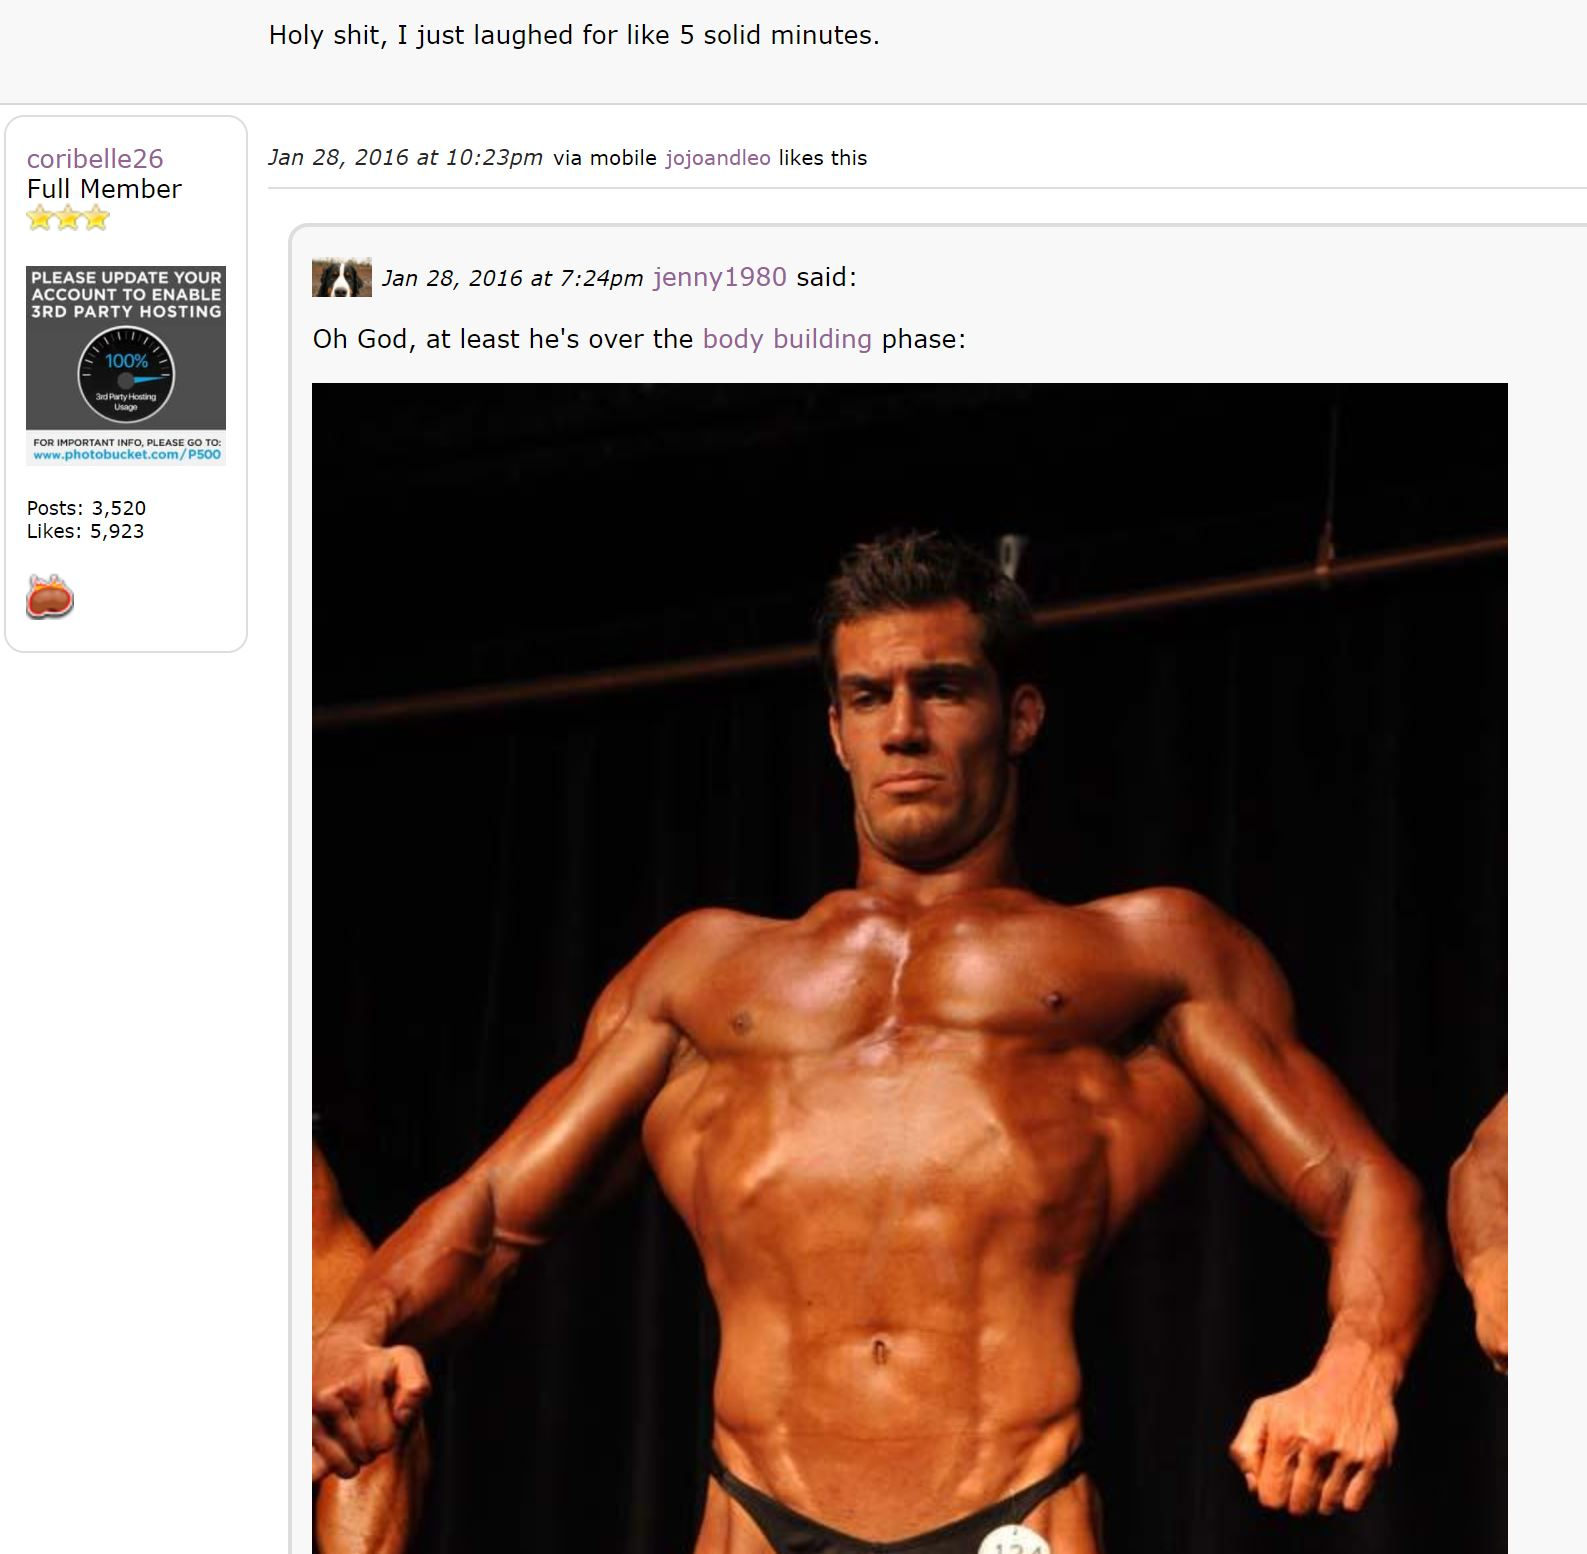 Apparently he had a body building stage...